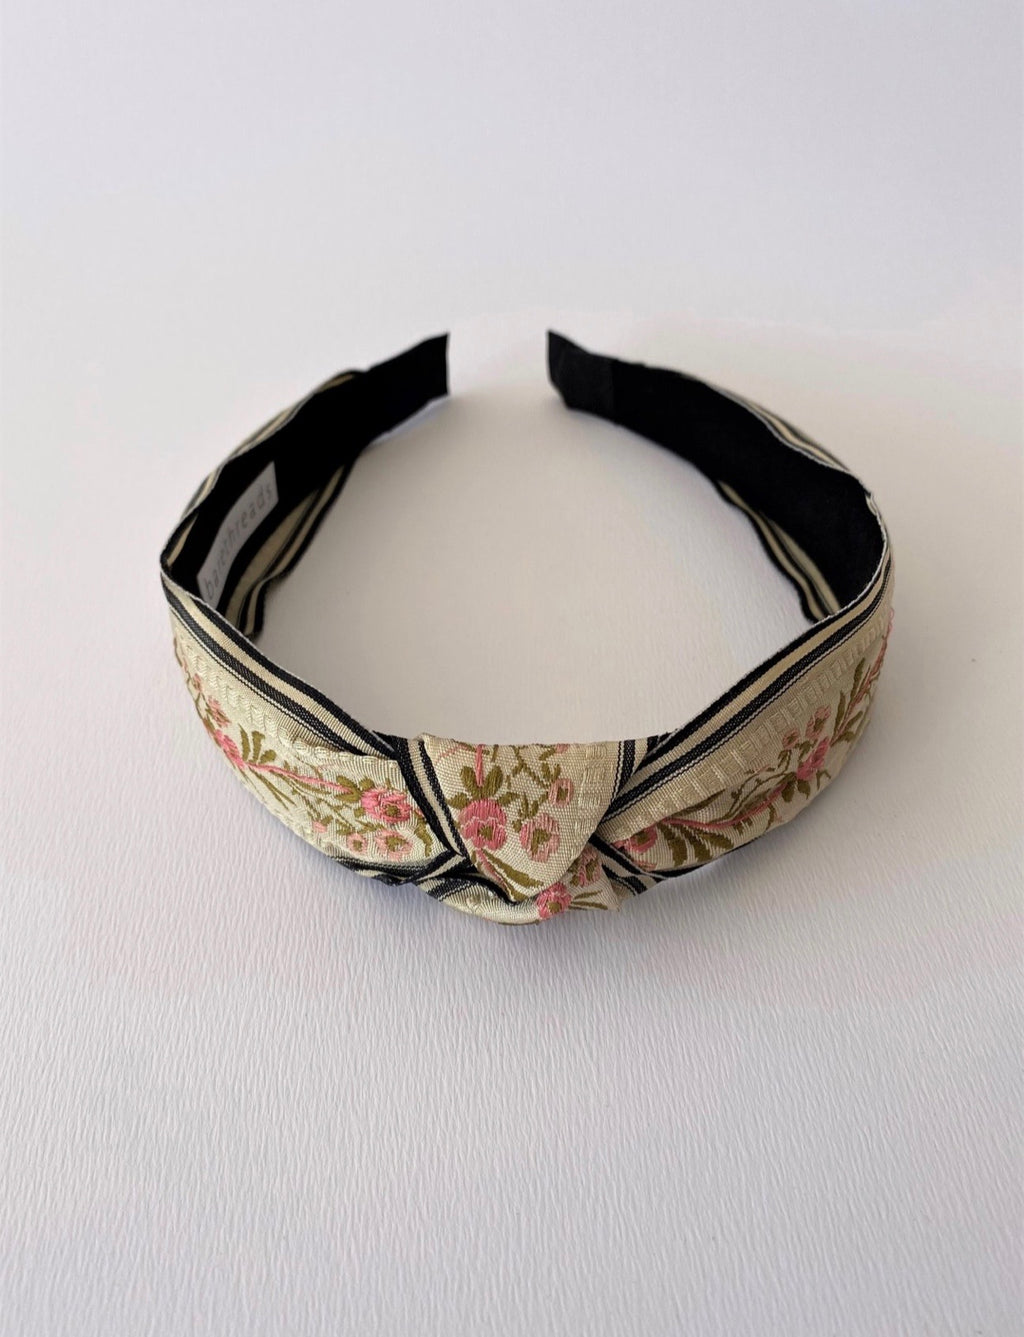 THE PRIMROSE EMBROIDERED BAND